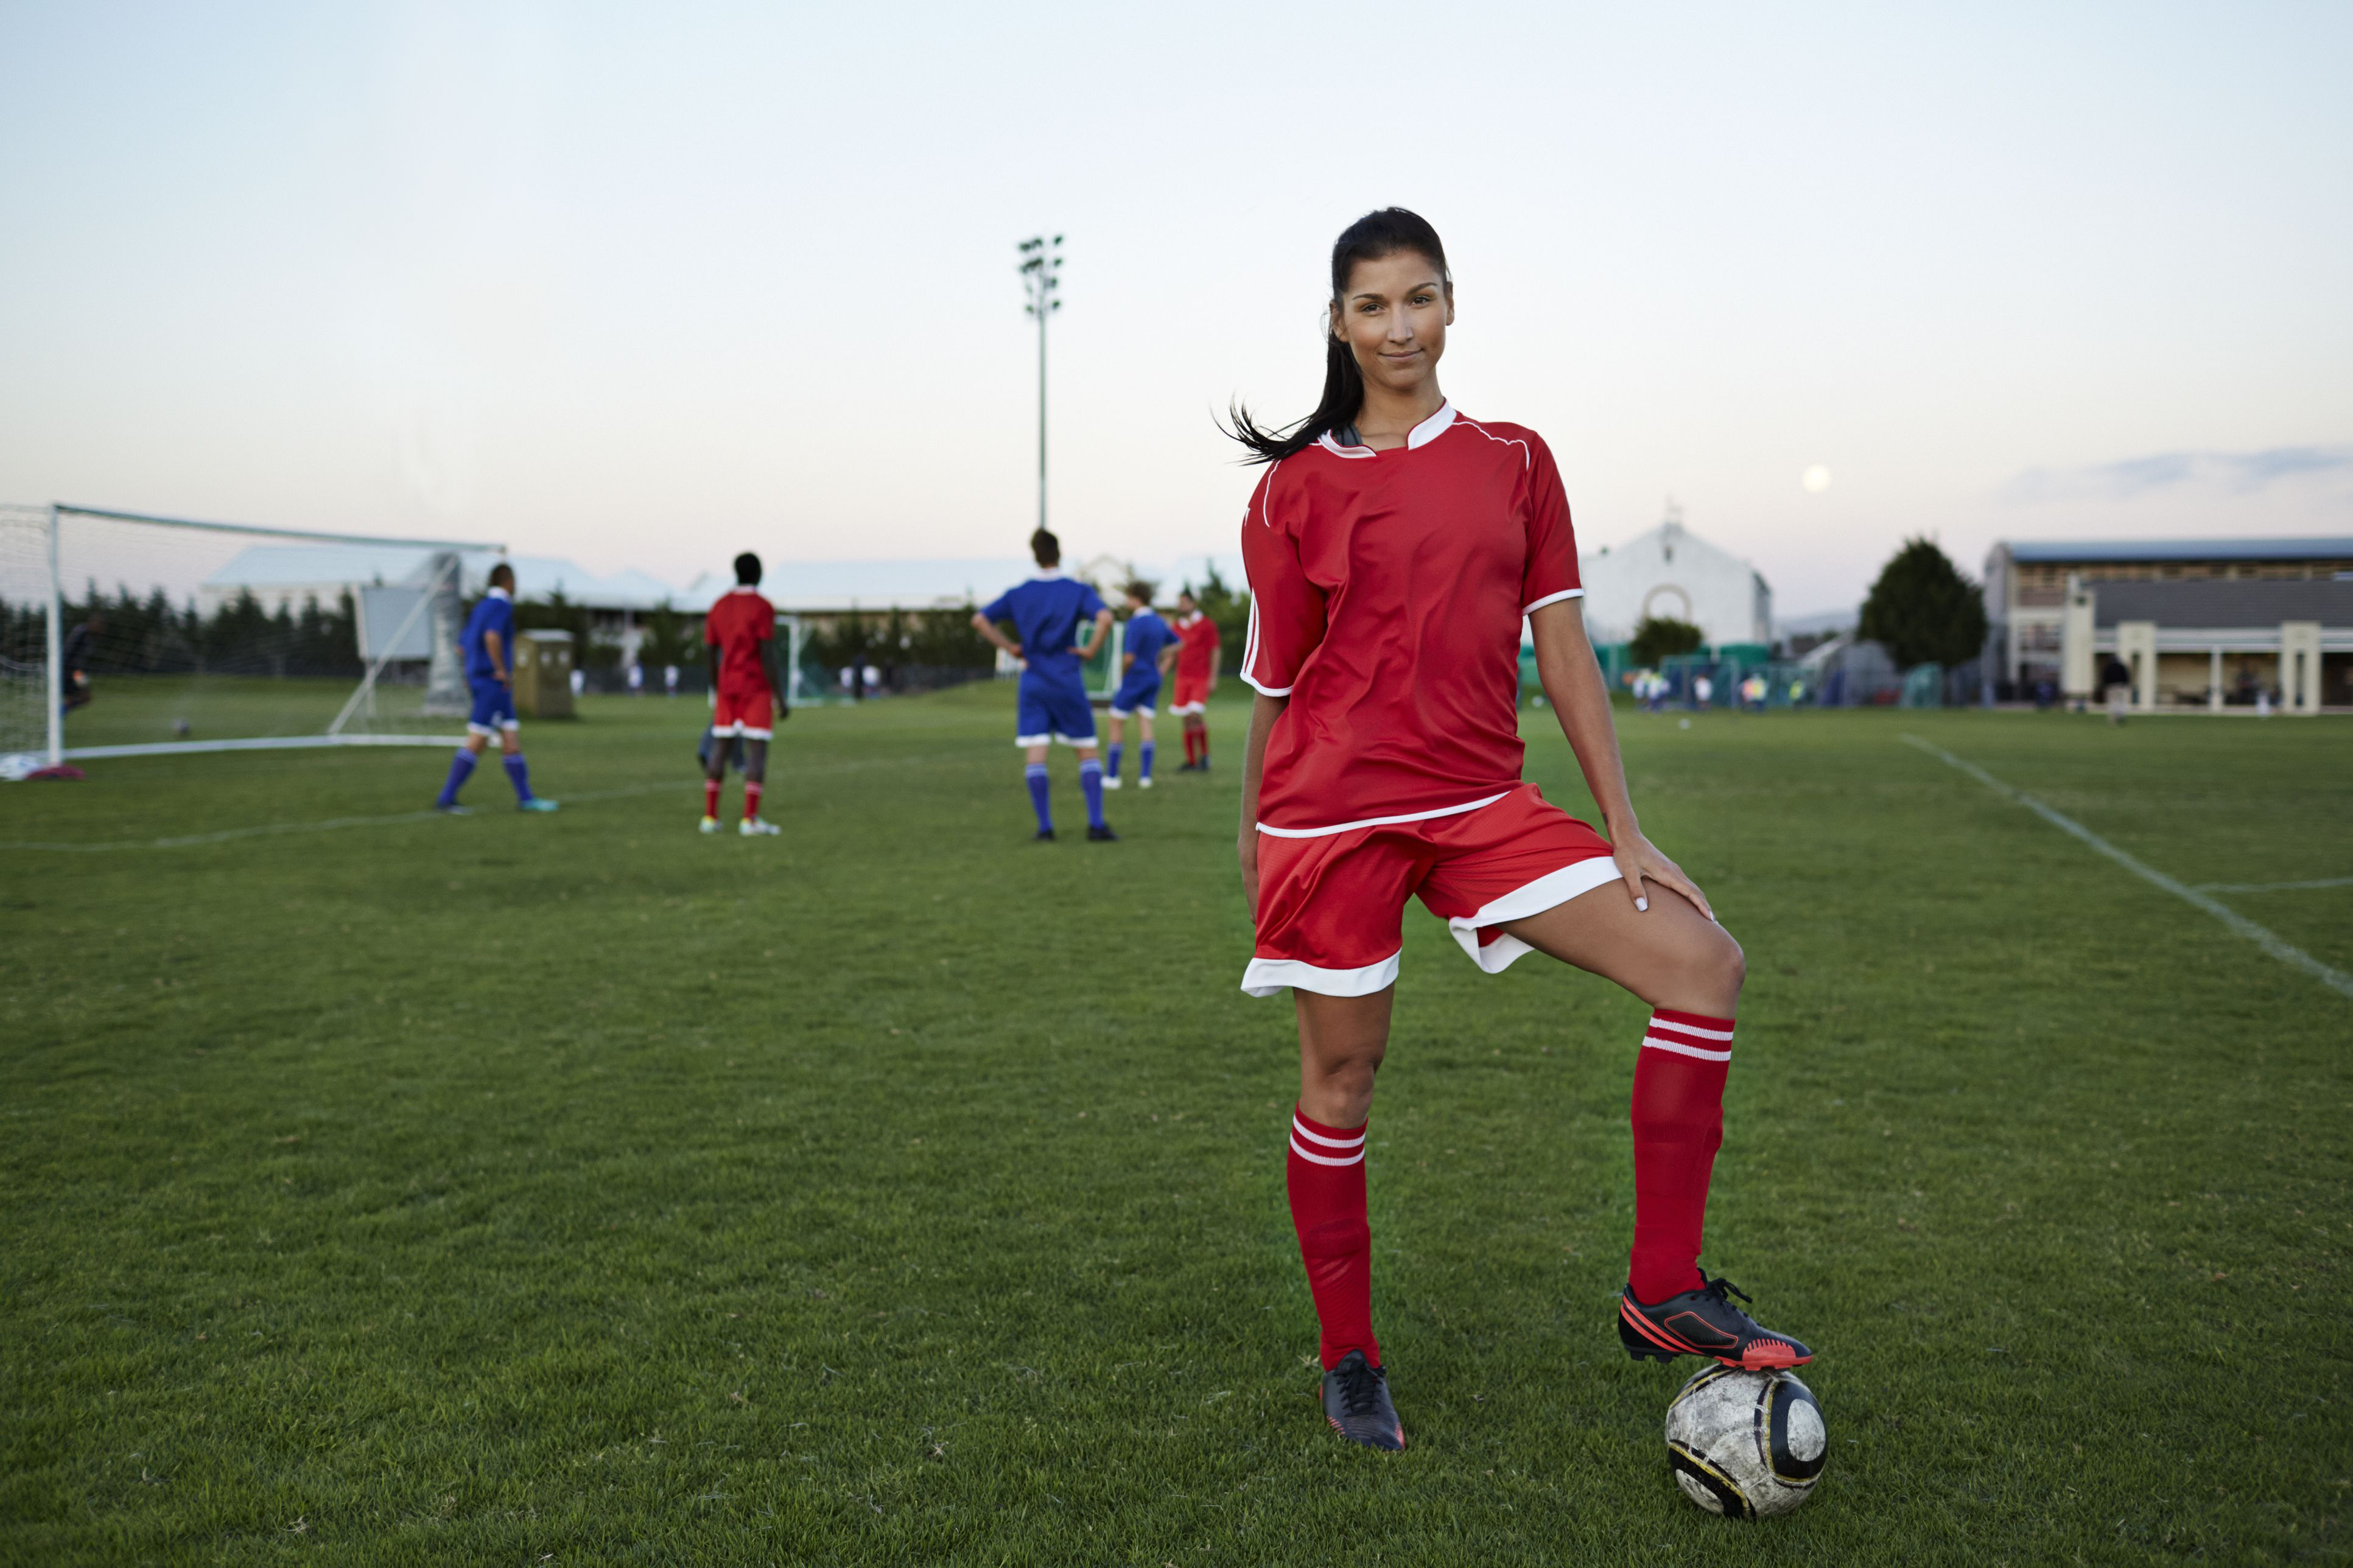 Female soccerplayer standing with foot on the ball